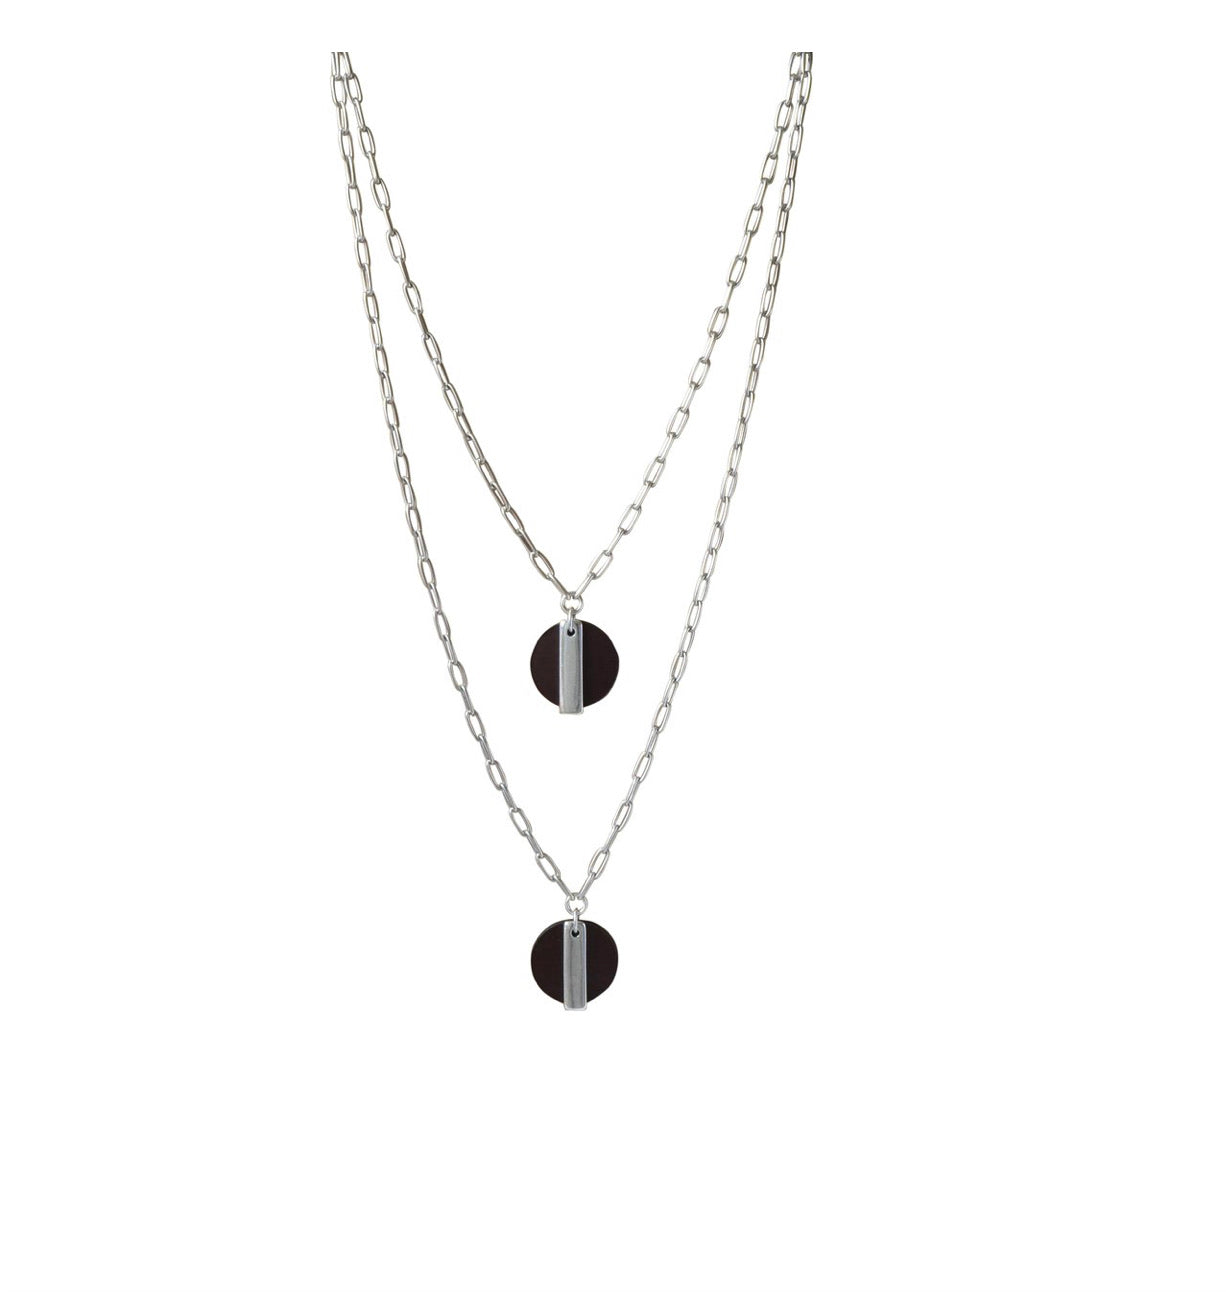 Vidda Cheyenne Necklace